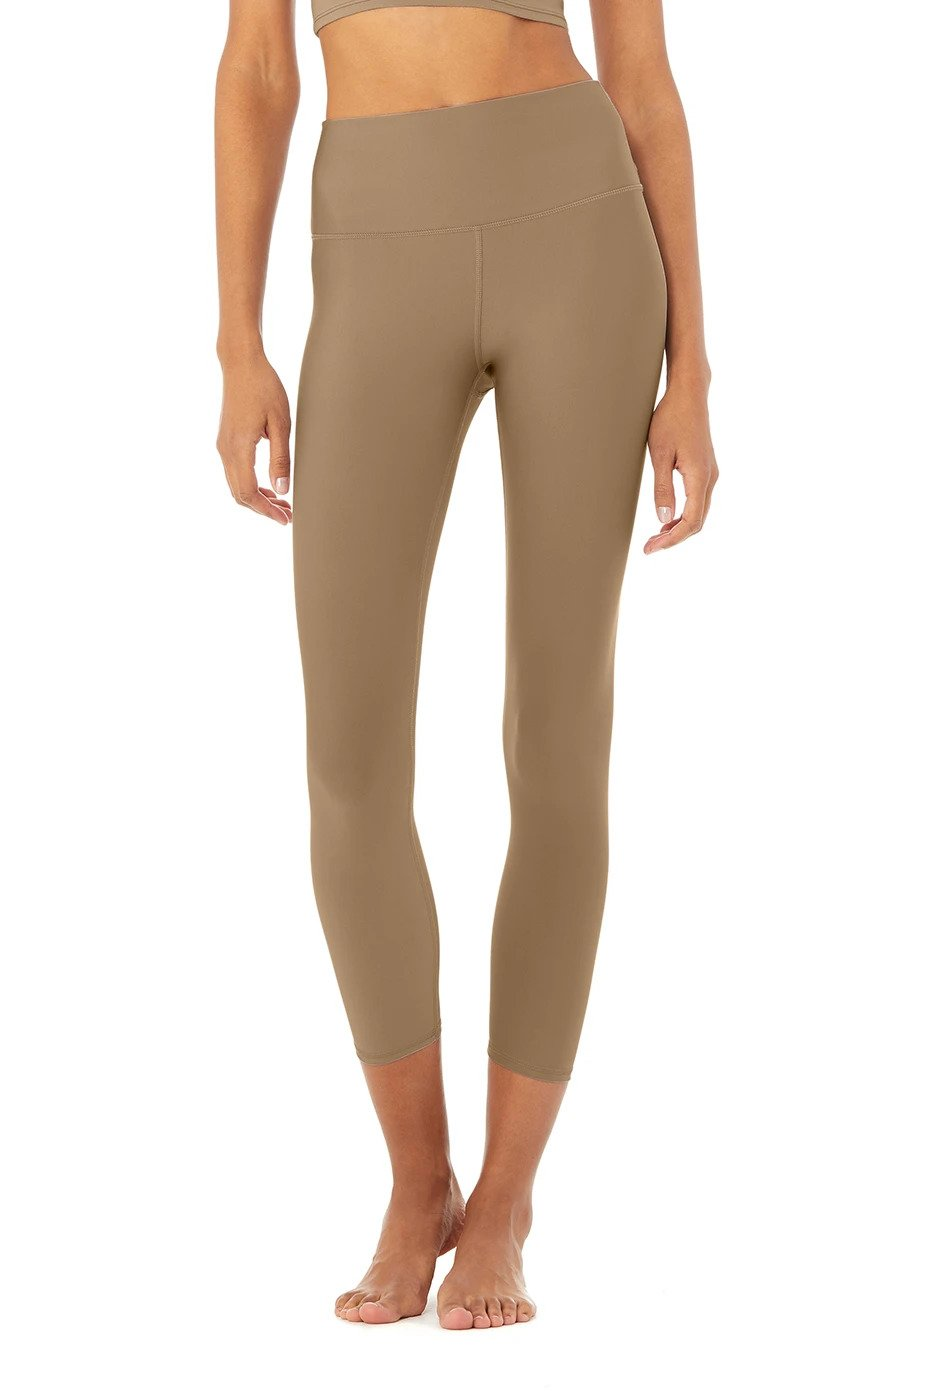 Alo Yoga XXS 7/8 High-Waist Airlift Legging - Gravel